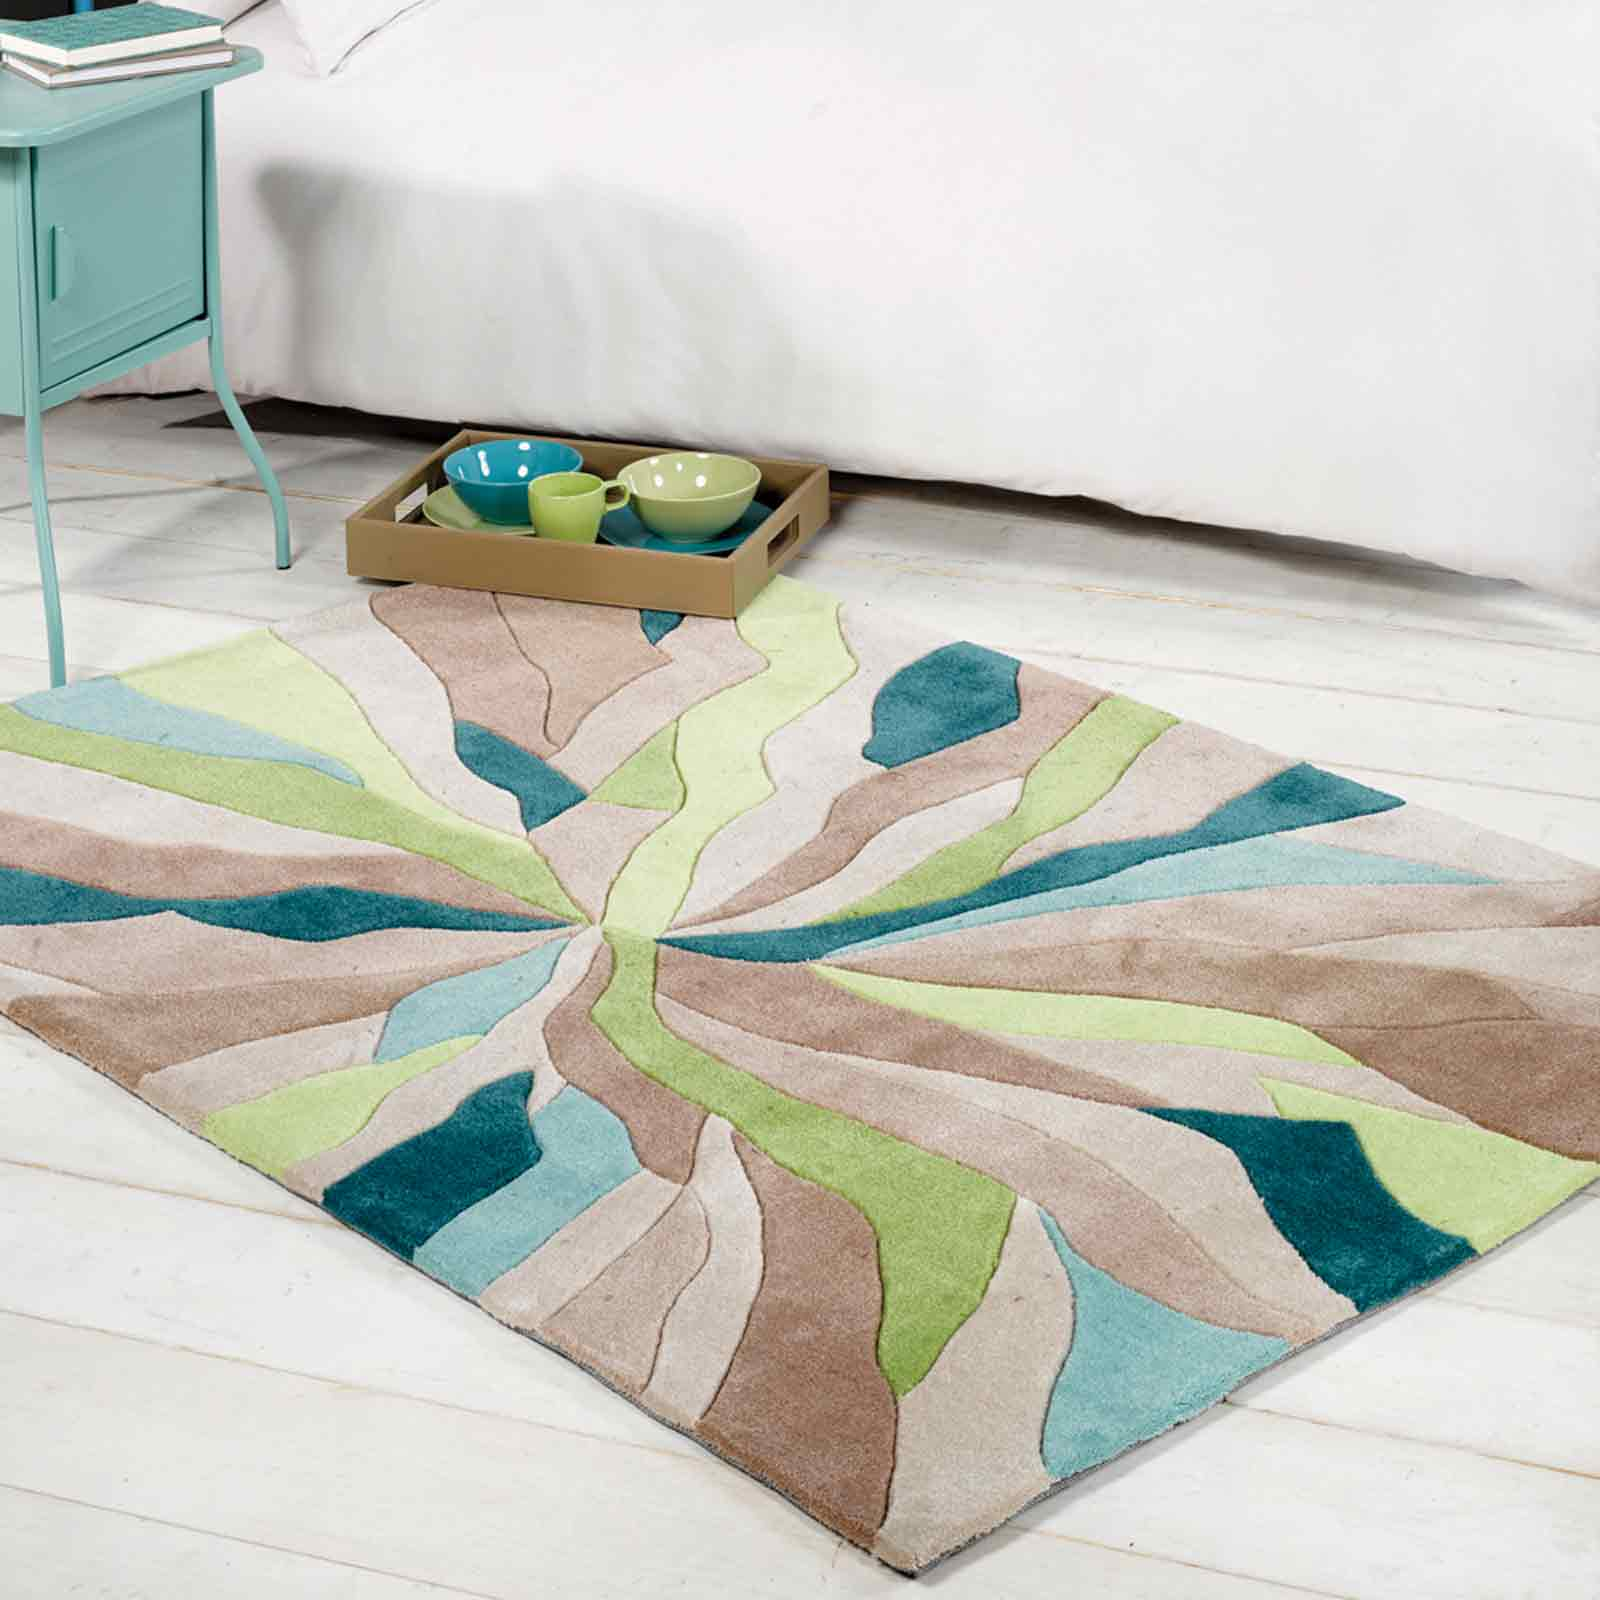 Infinite Splinter Rugs in Teal Green